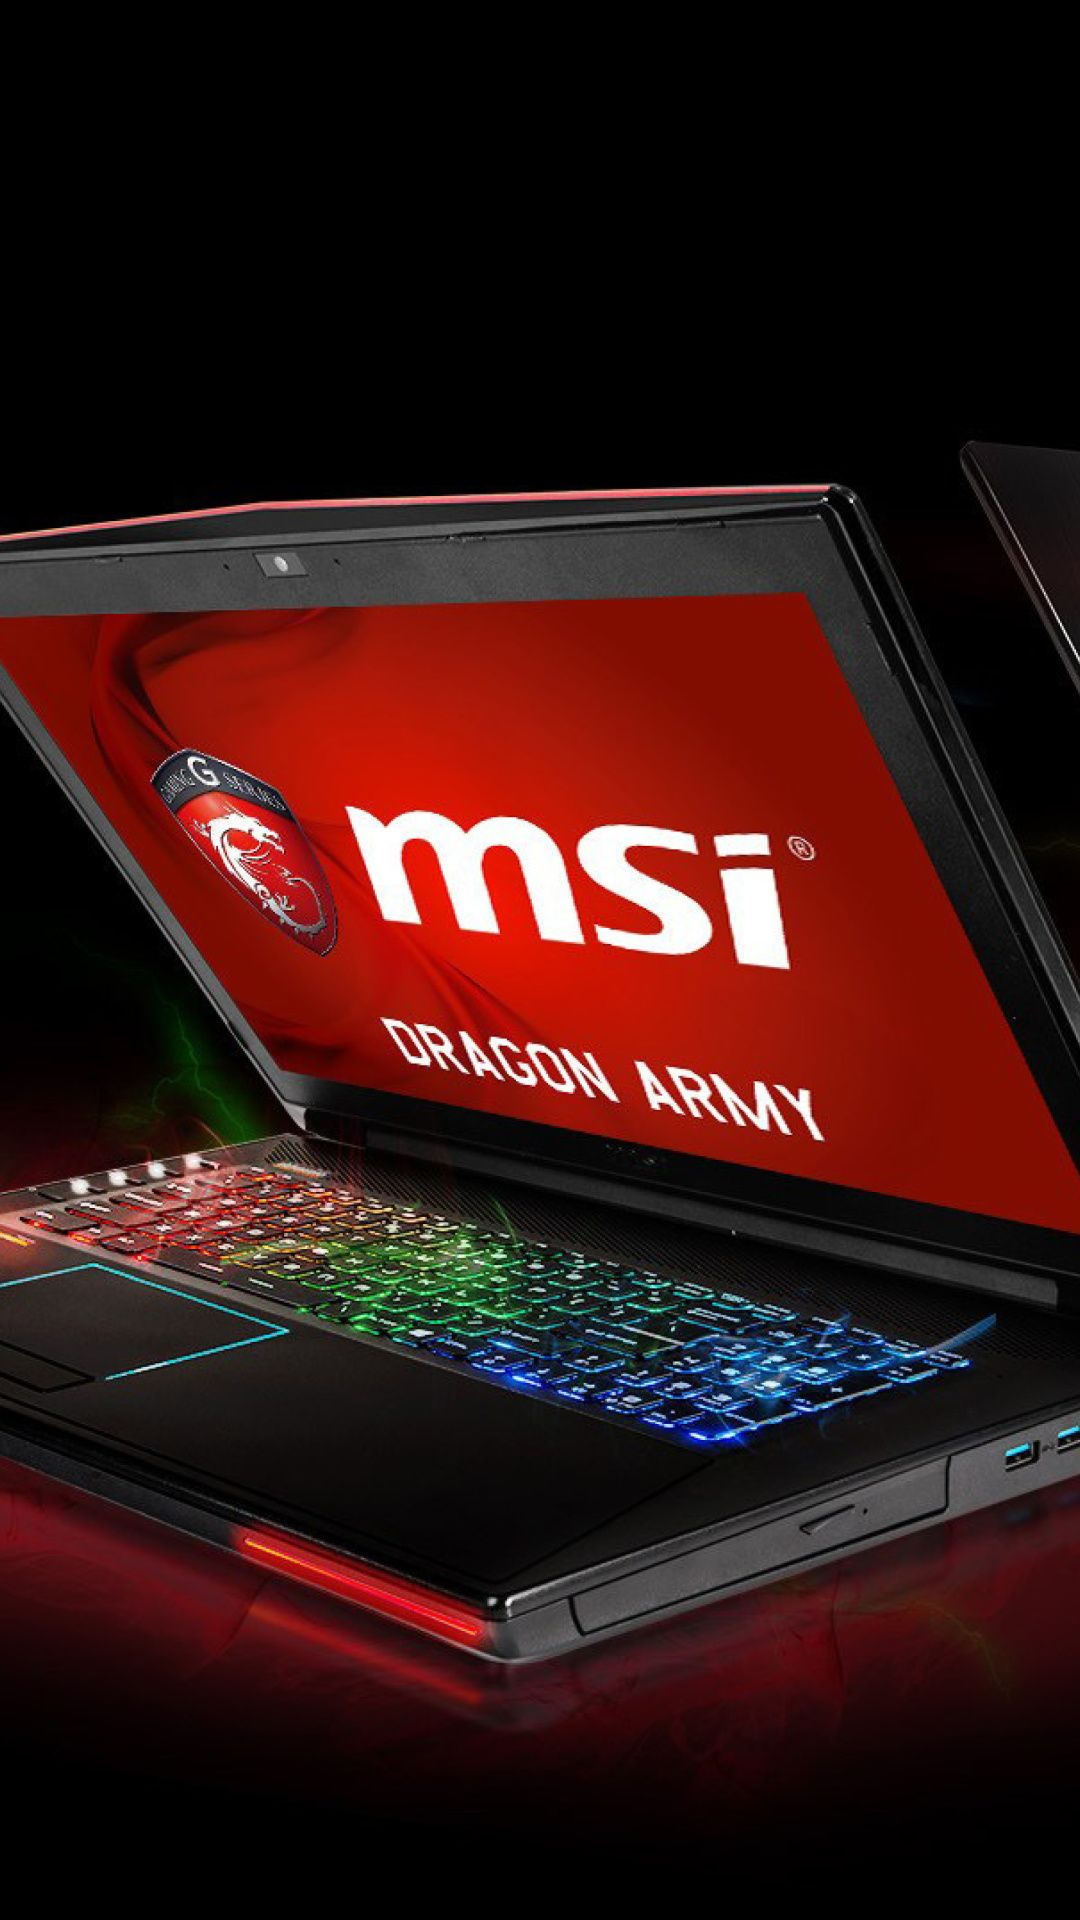 Msi Dragon Army Wallpaper For Nokia Lumia